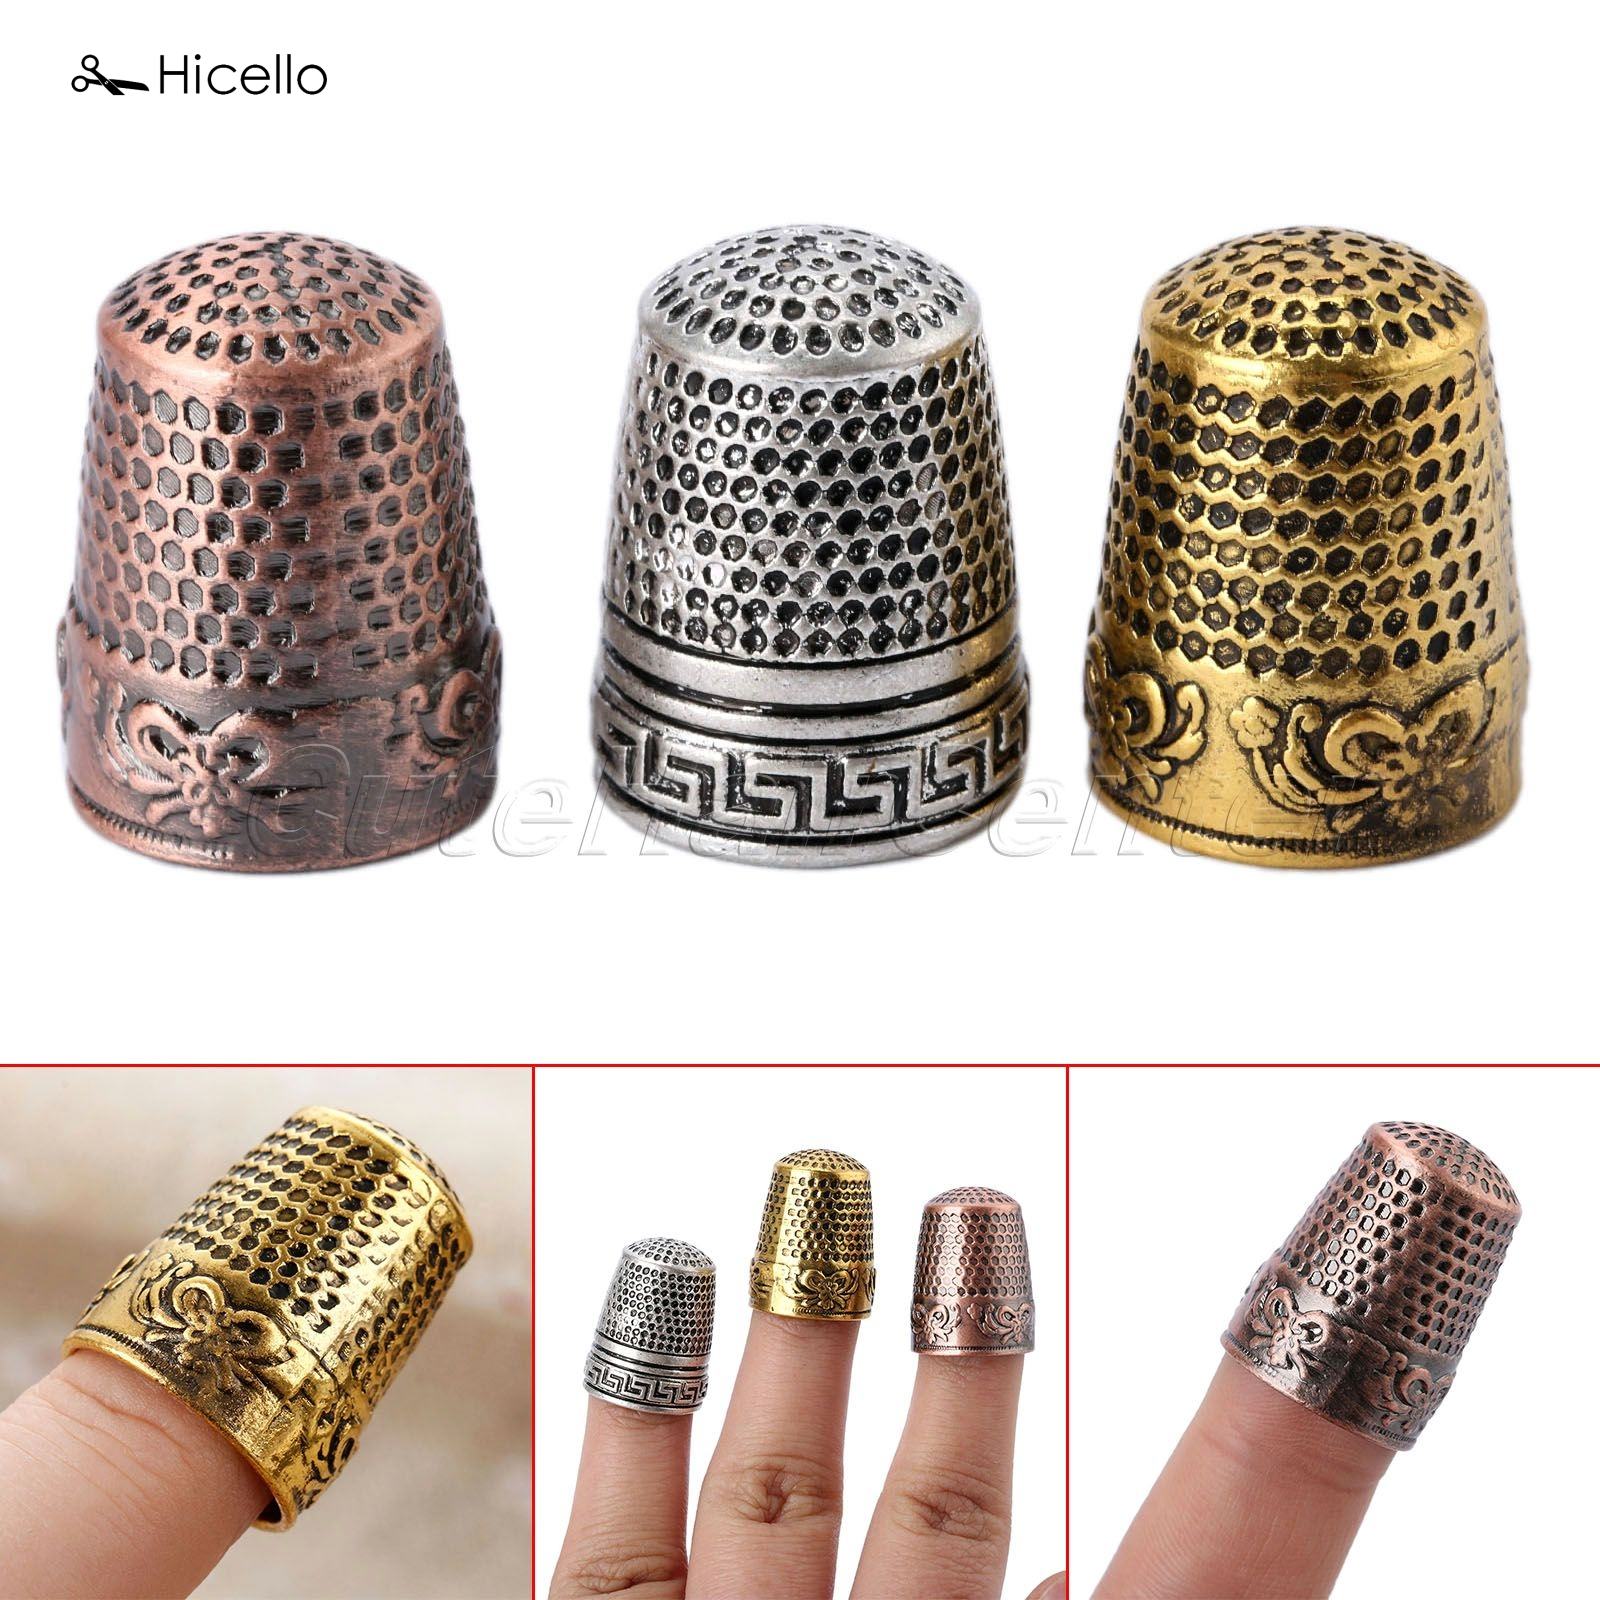 Hicello 1pc Sewing Thimble Finger Protector Classical Pattern Hard Metal Thimble Sewing Tools Needles Partner costura 2.3cm